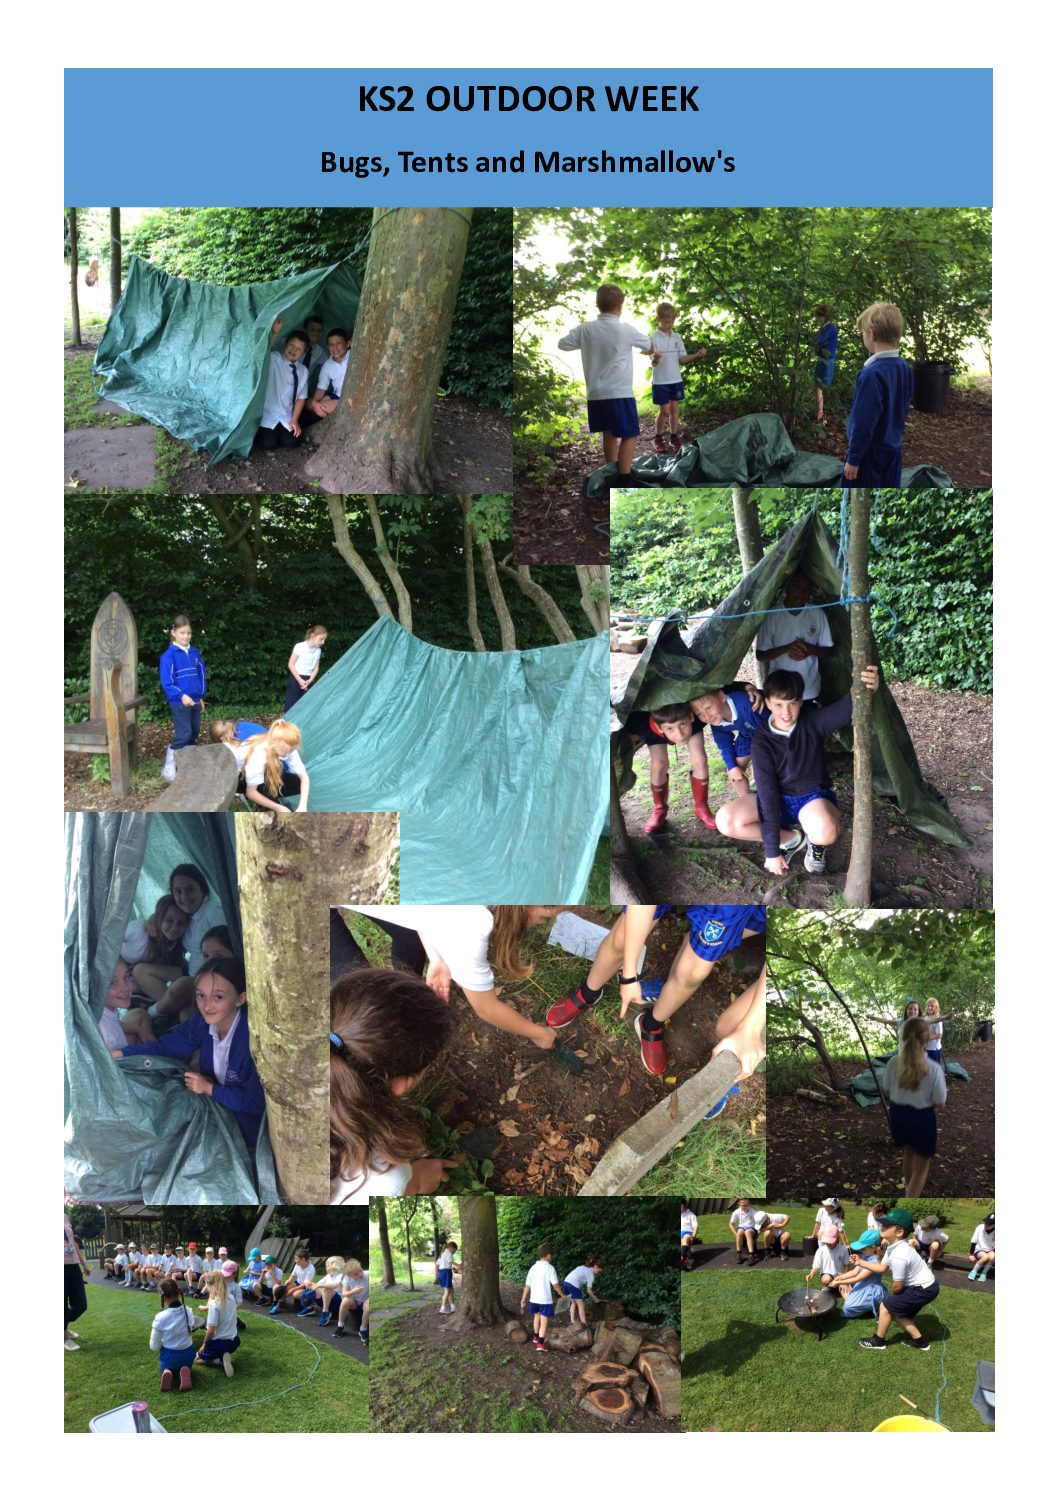 KS2 OUTDOOR WEEK – Bugs, Dens and Marshmallows